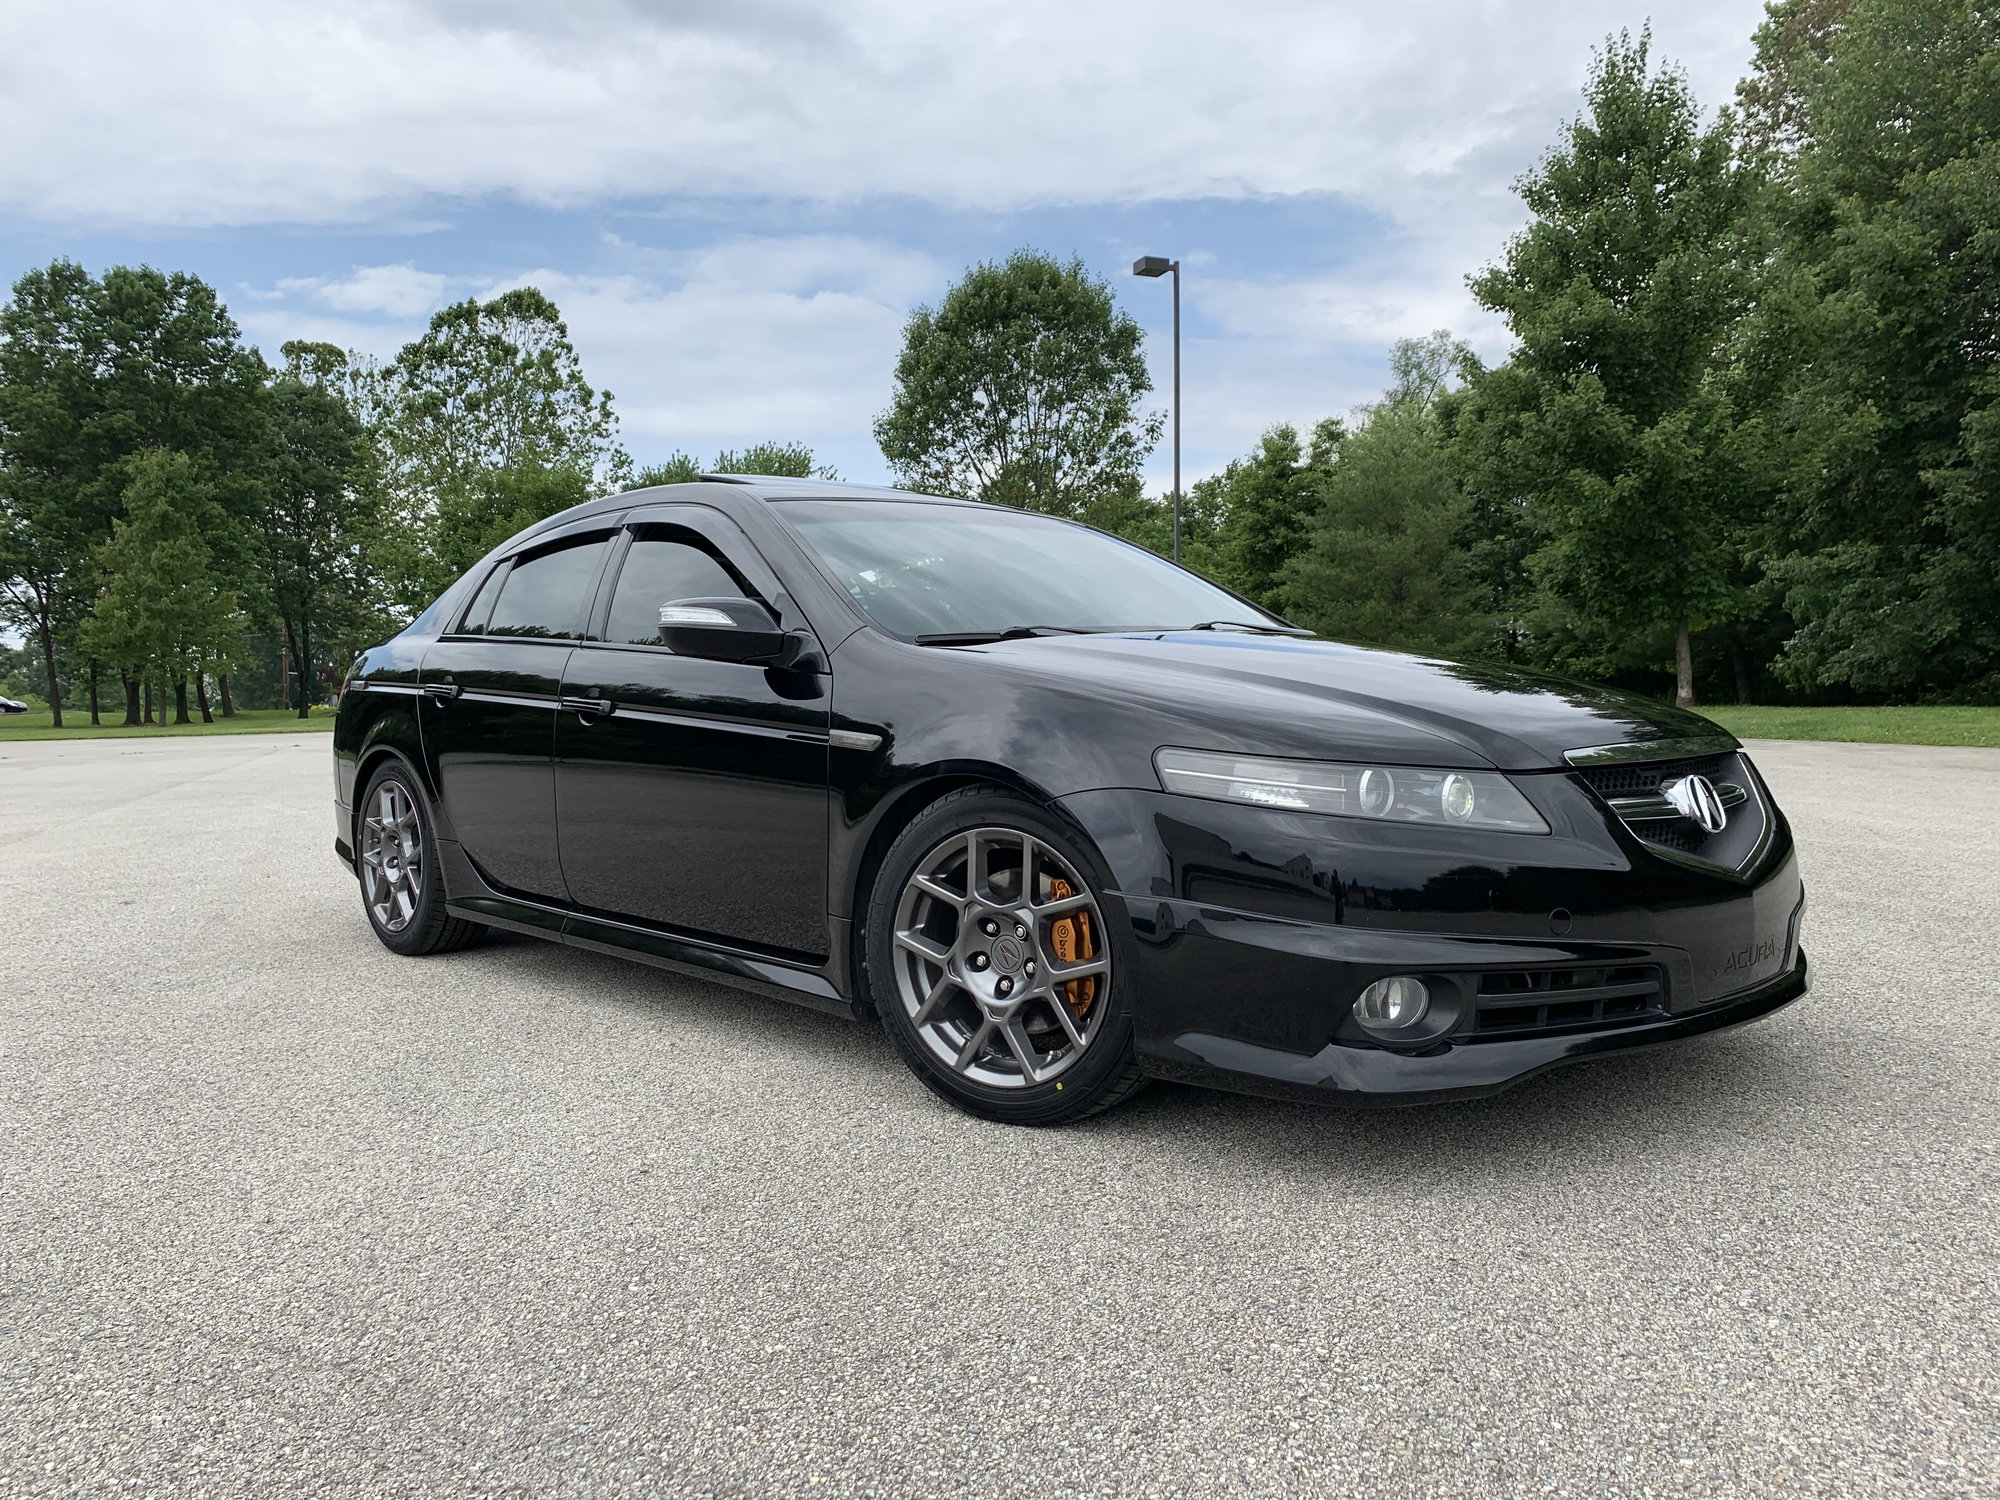 2008 Acura Tl Type S For Sale White Manual Manual Guide